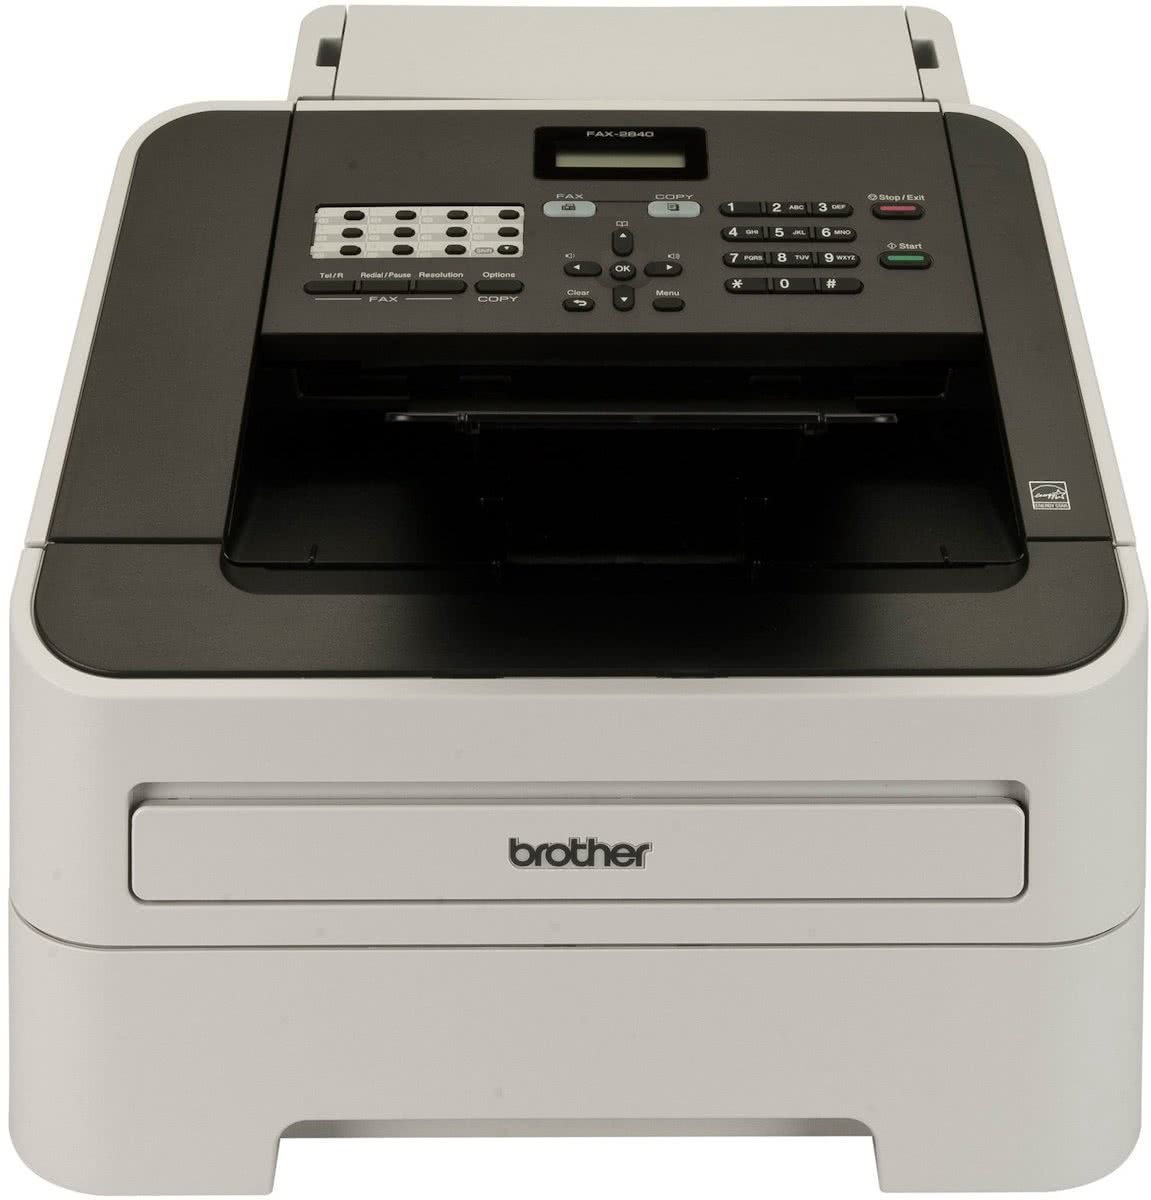 BROTHER LASERFAX 2840  FAX-2840